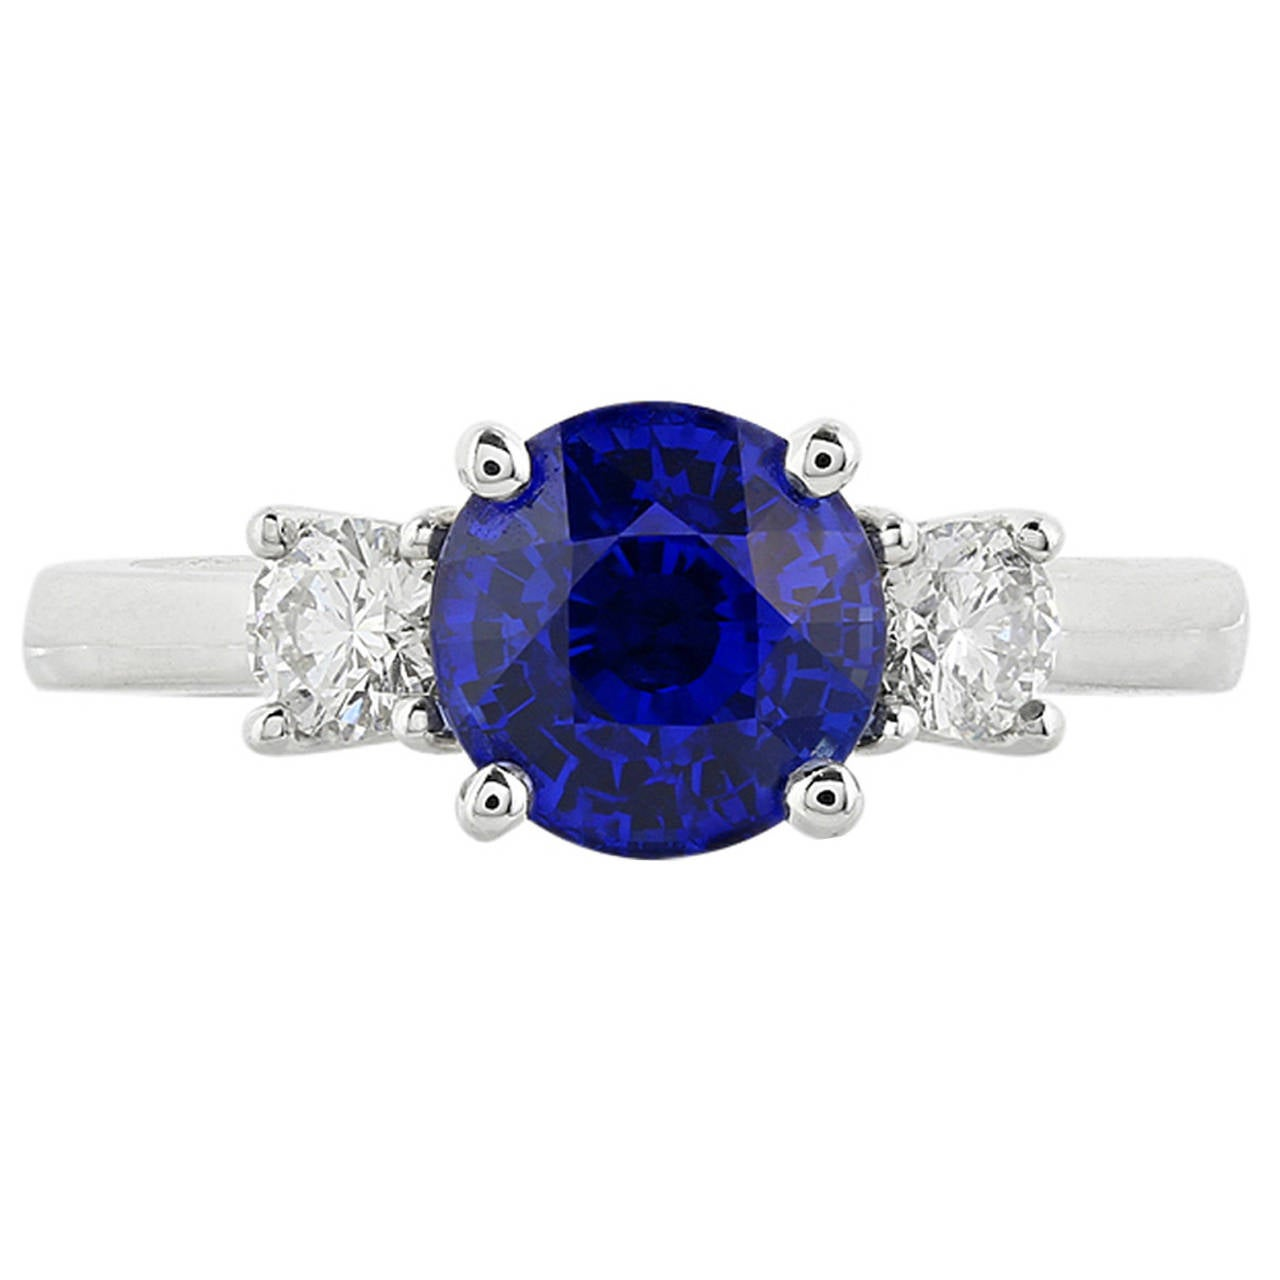 3.01 Carat Sapphire Diamond Gold Engagement Ring For Sale